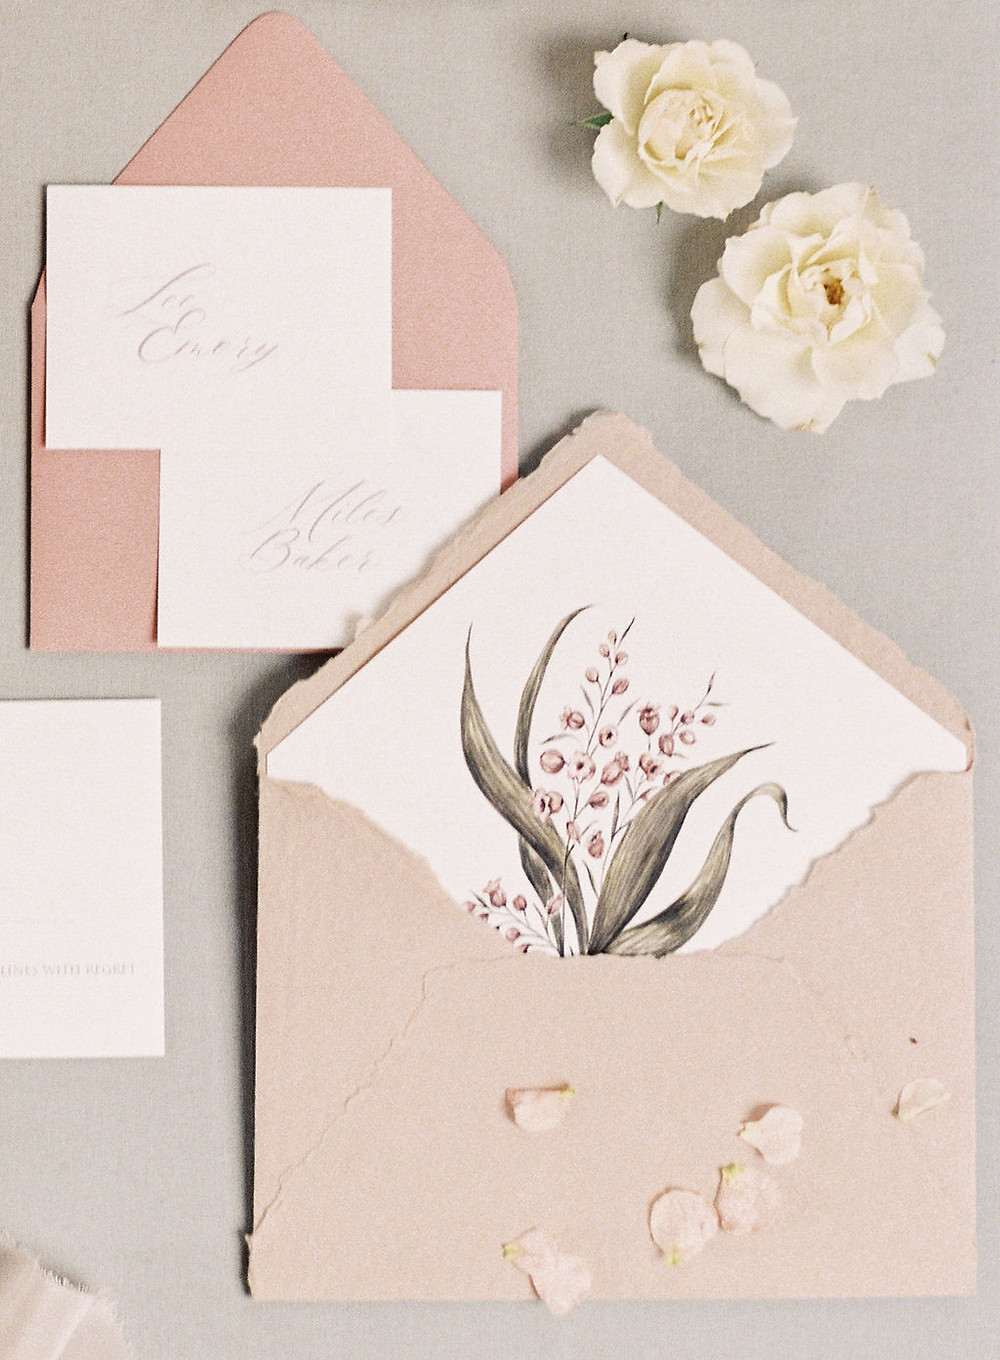 Wedding Invitations and Papergoods for Bridgerton Inspired Wedding at the Marigny Opera House in New Orleans with Lounge Spaces and Vintage Furniture by Lovegood Rentals